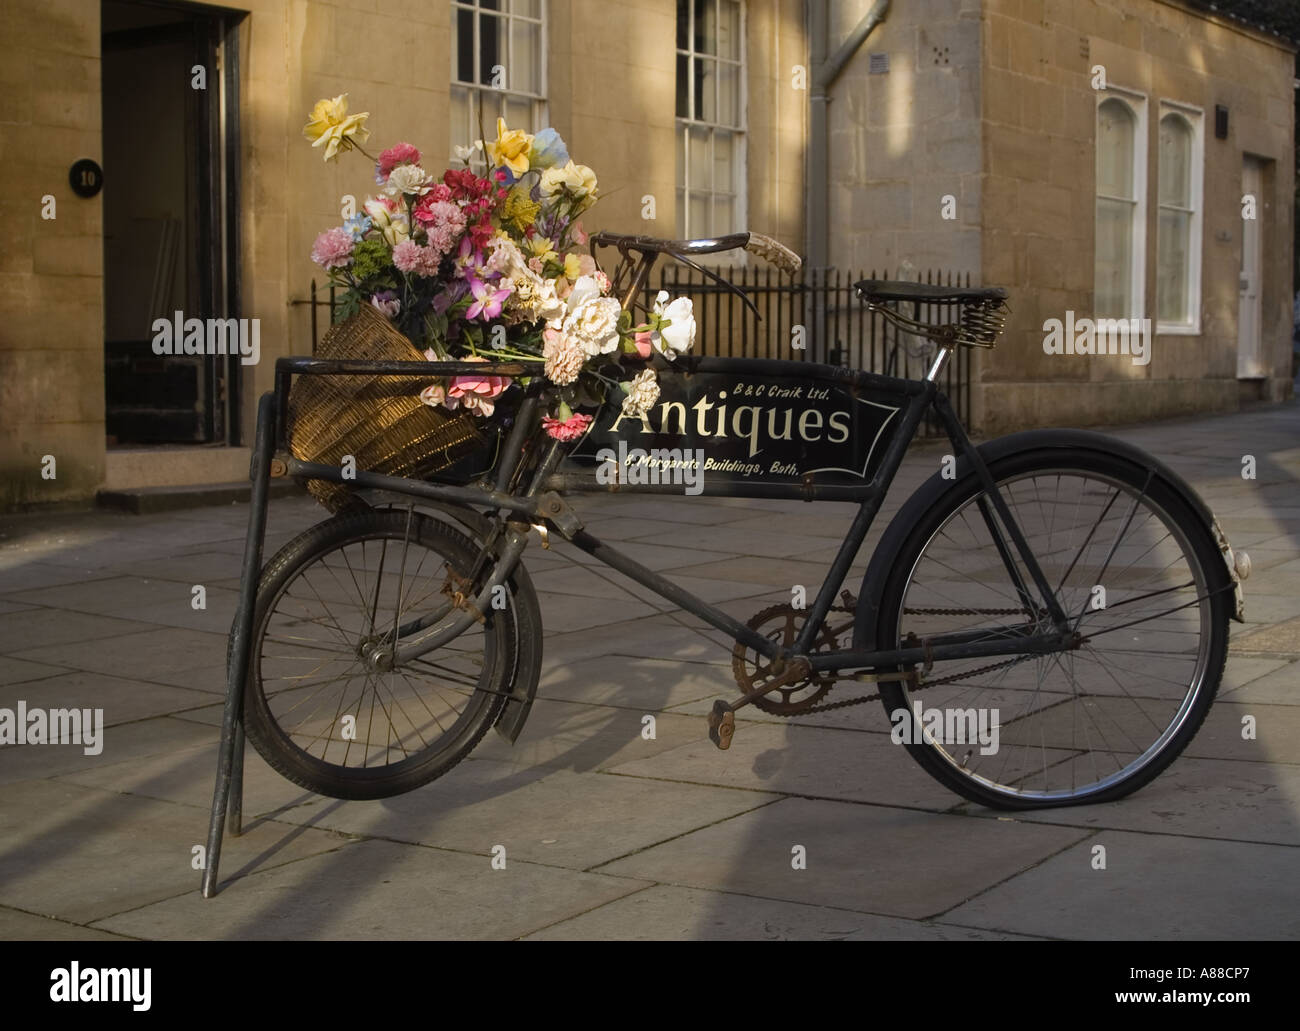 Old bicycle advertising antiques shop in the city of BATH England - Stock Image